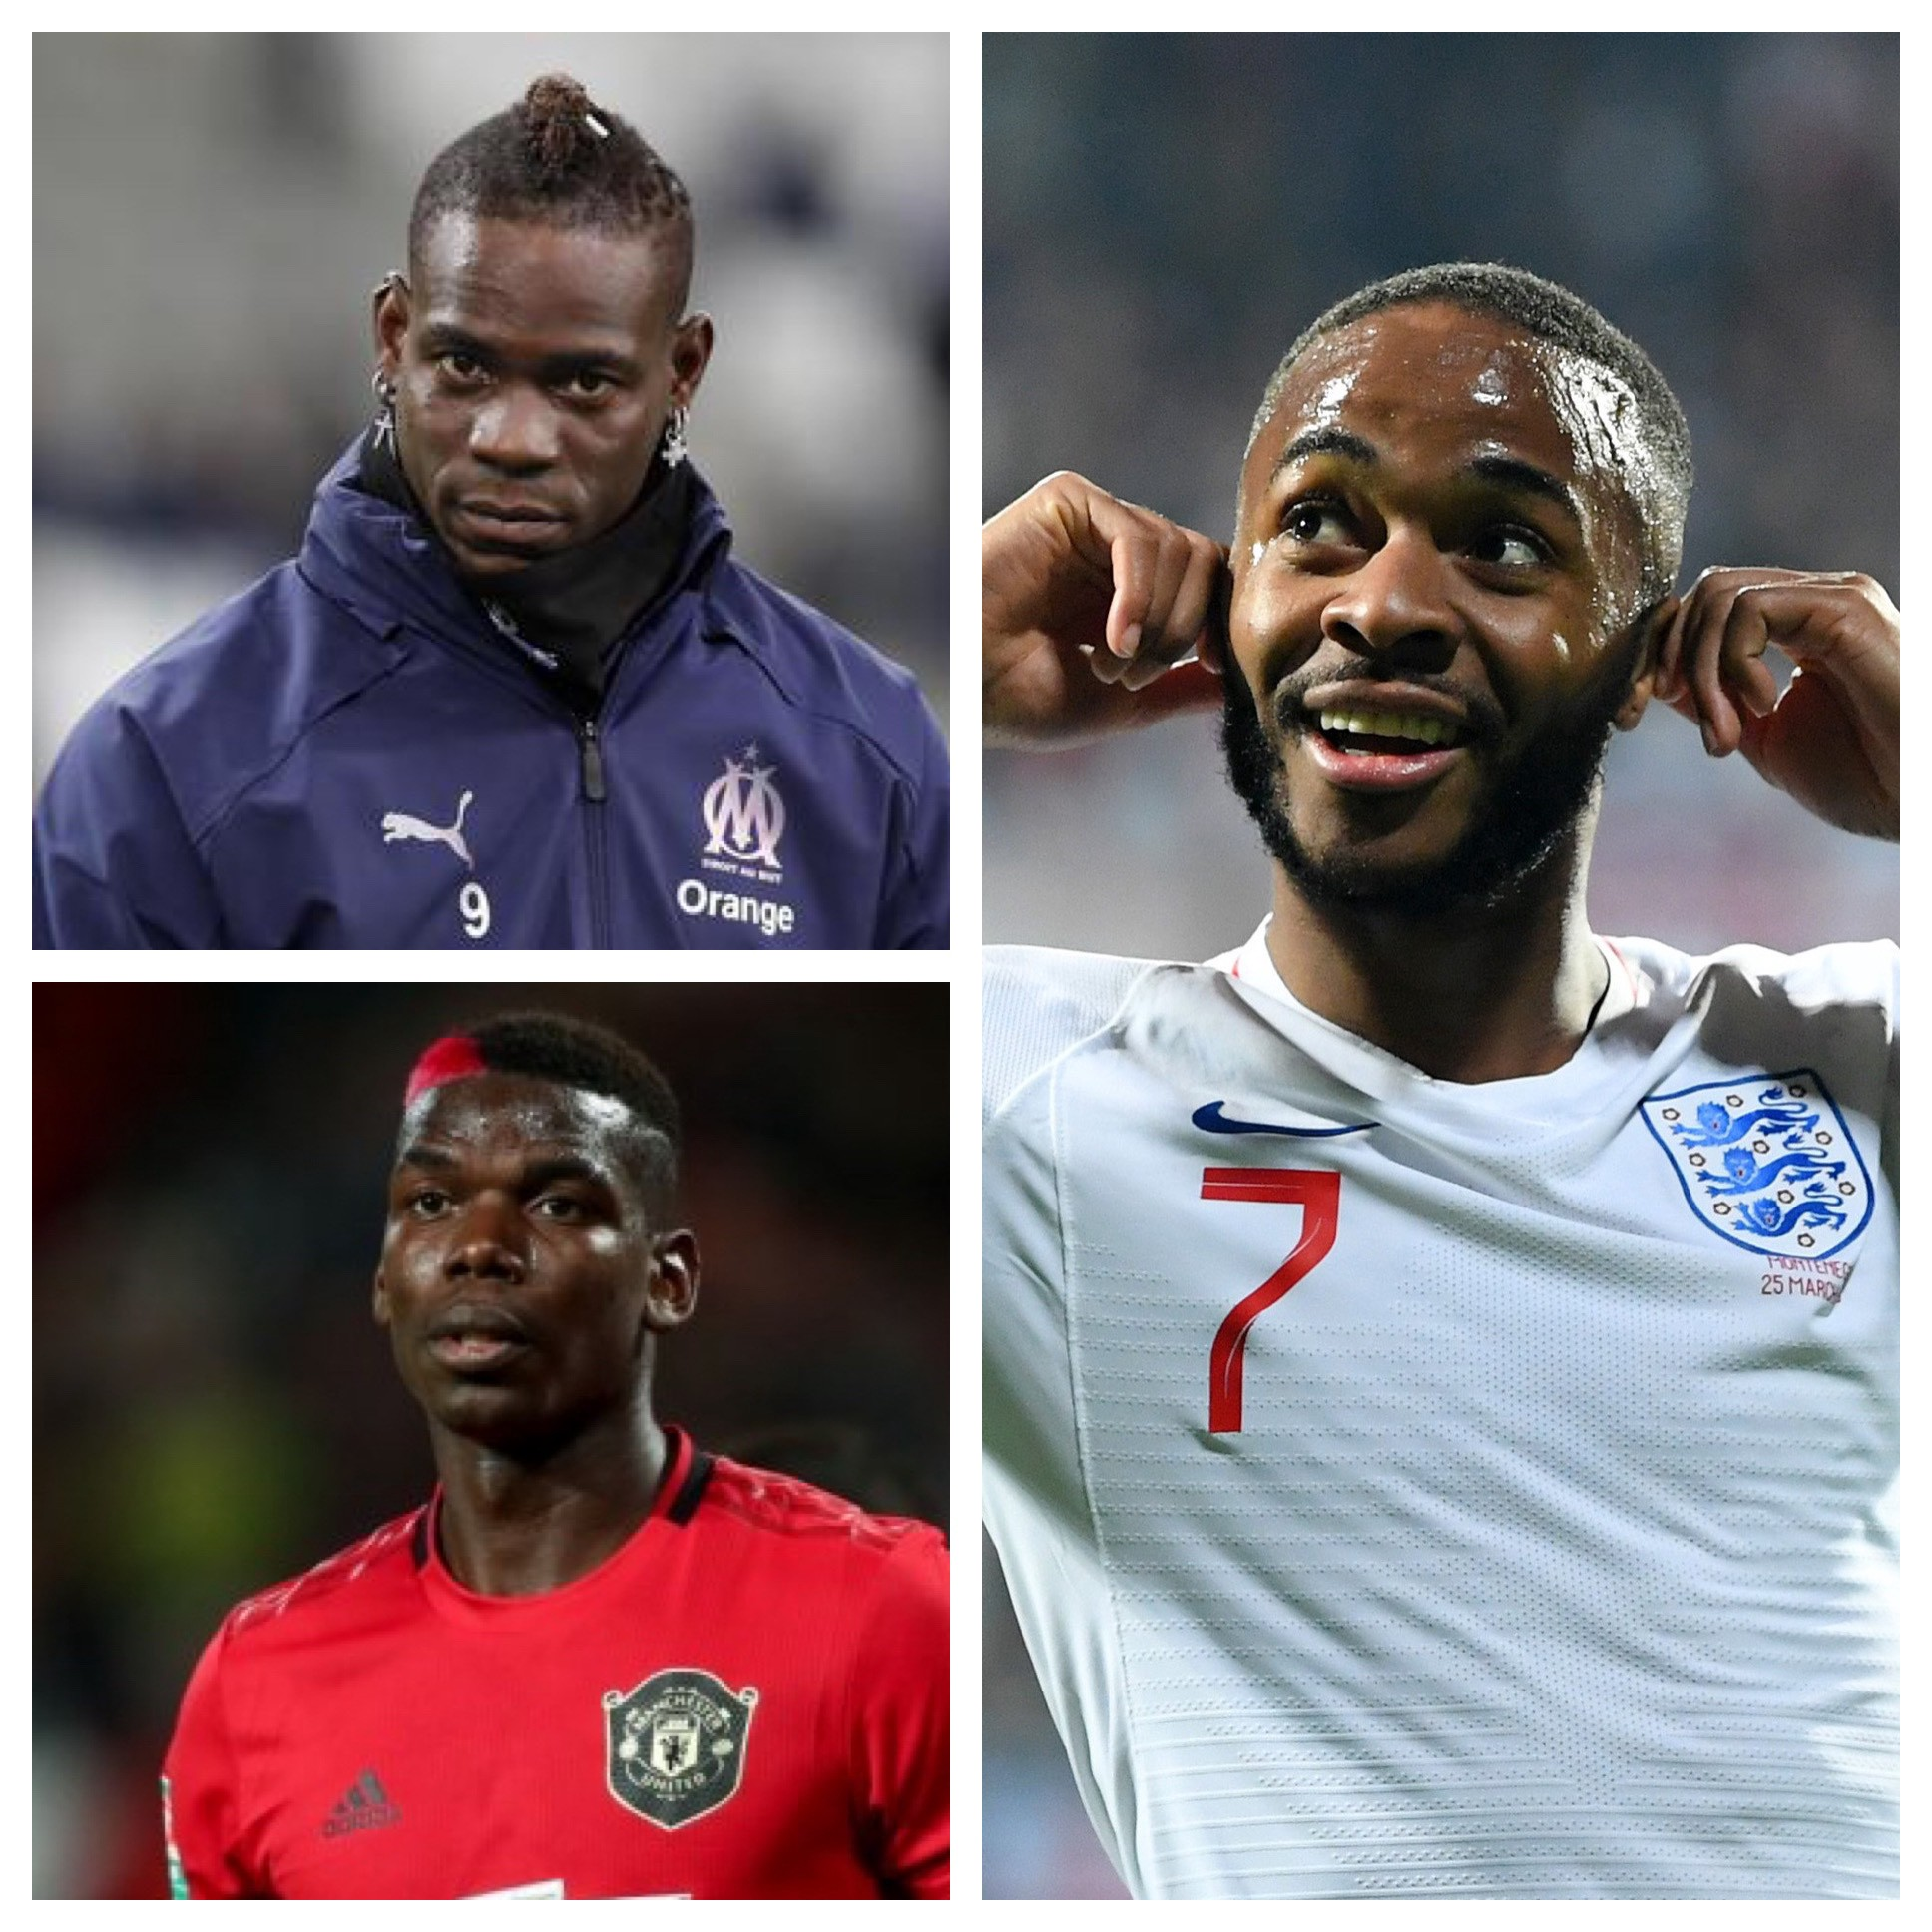 Racism Balotelli Pogba Raheem Sterling The Moise Kean Connection By Mauludsadiq The Brothers Medium